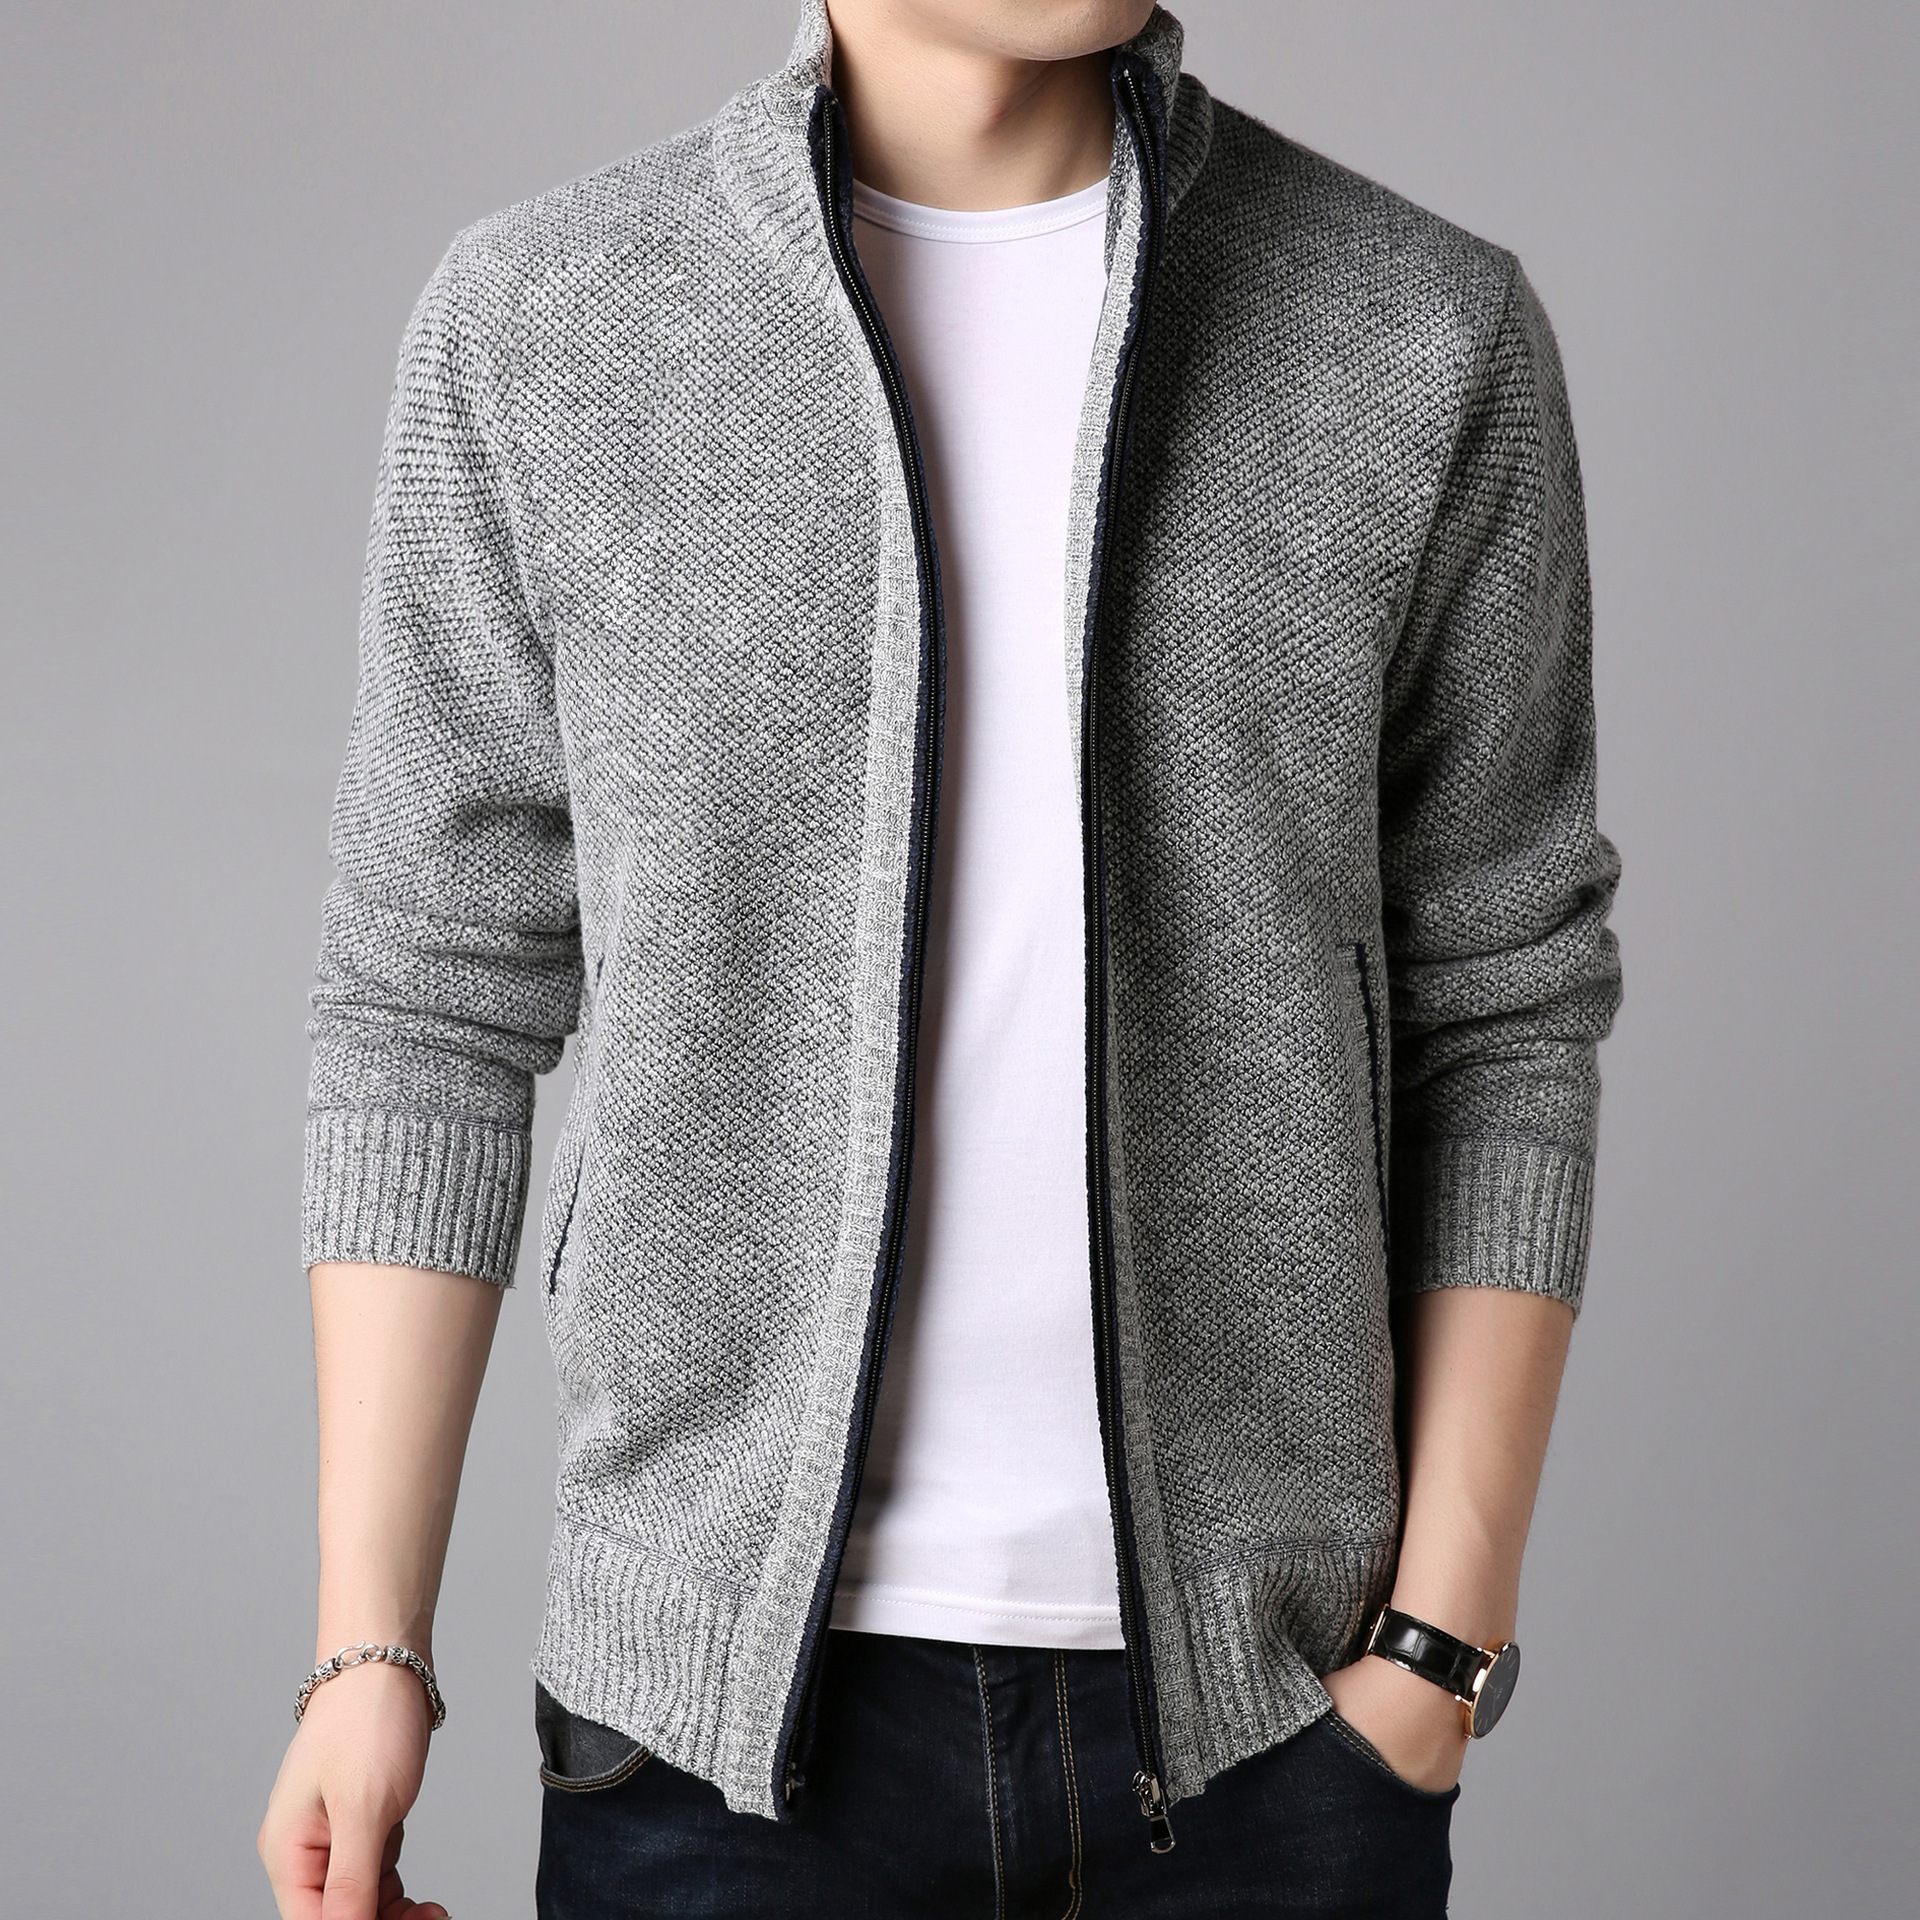 Winter Fleece Men's Sweater Coat Side Pocket Long Sleeve Knitted Cardigan Full Zip Autumn Warm Male Fashionable Causal Clothing